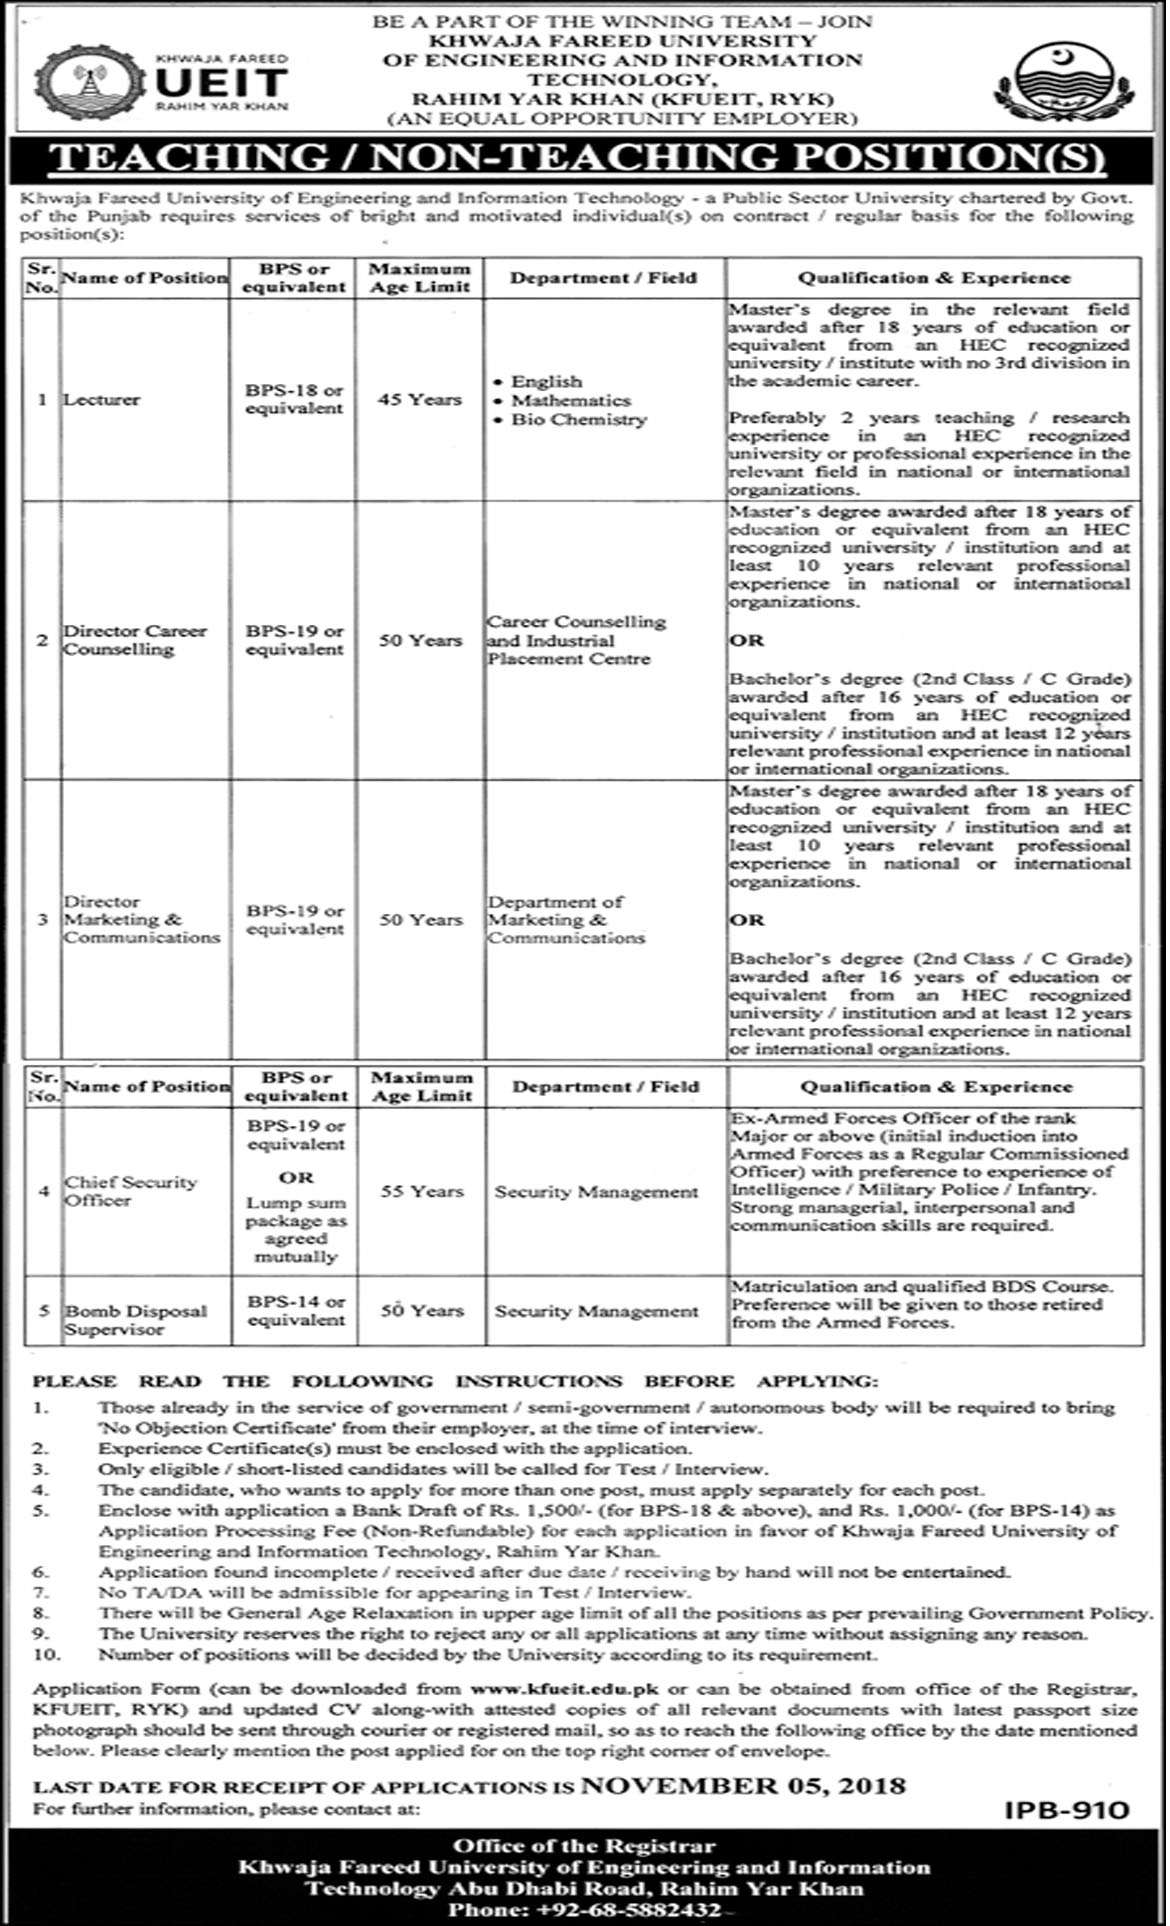 Jobs In Khawaja Fareed University Of Engineering And Information Technology 24 Oct 2018